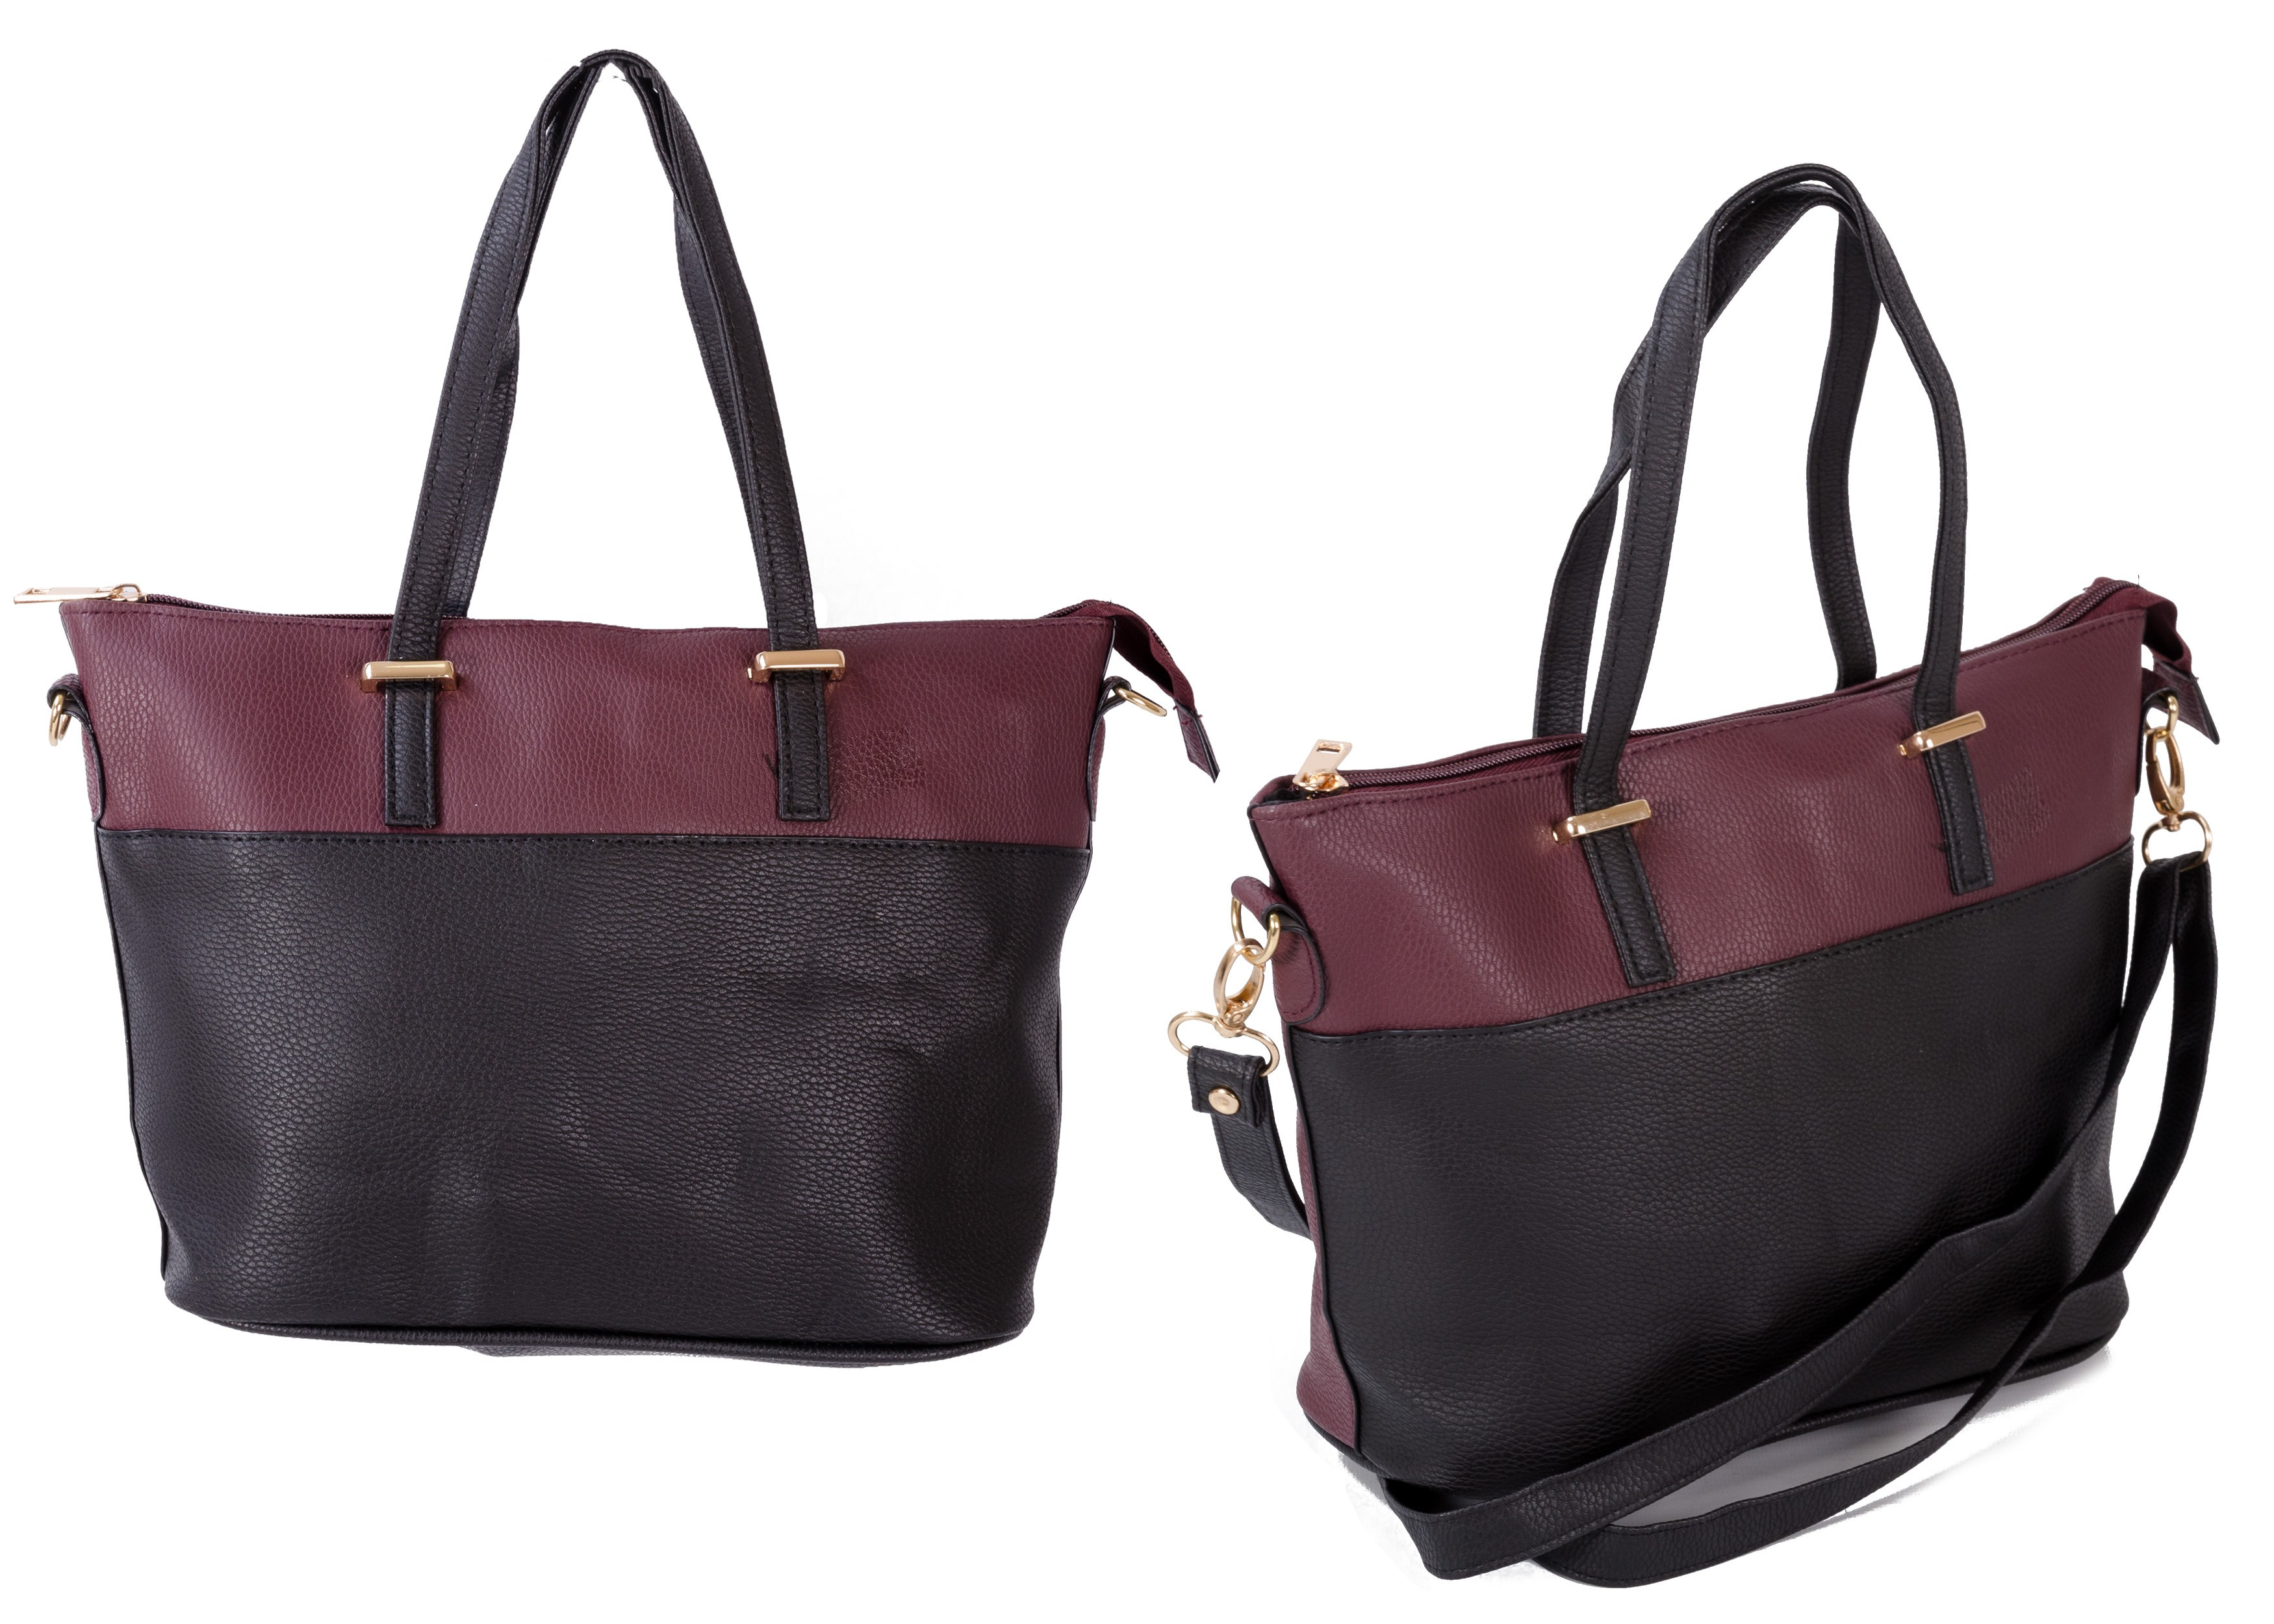 JBFB150B WINE/BLACK PU HANDBAG W/ SHOULDER STRAP